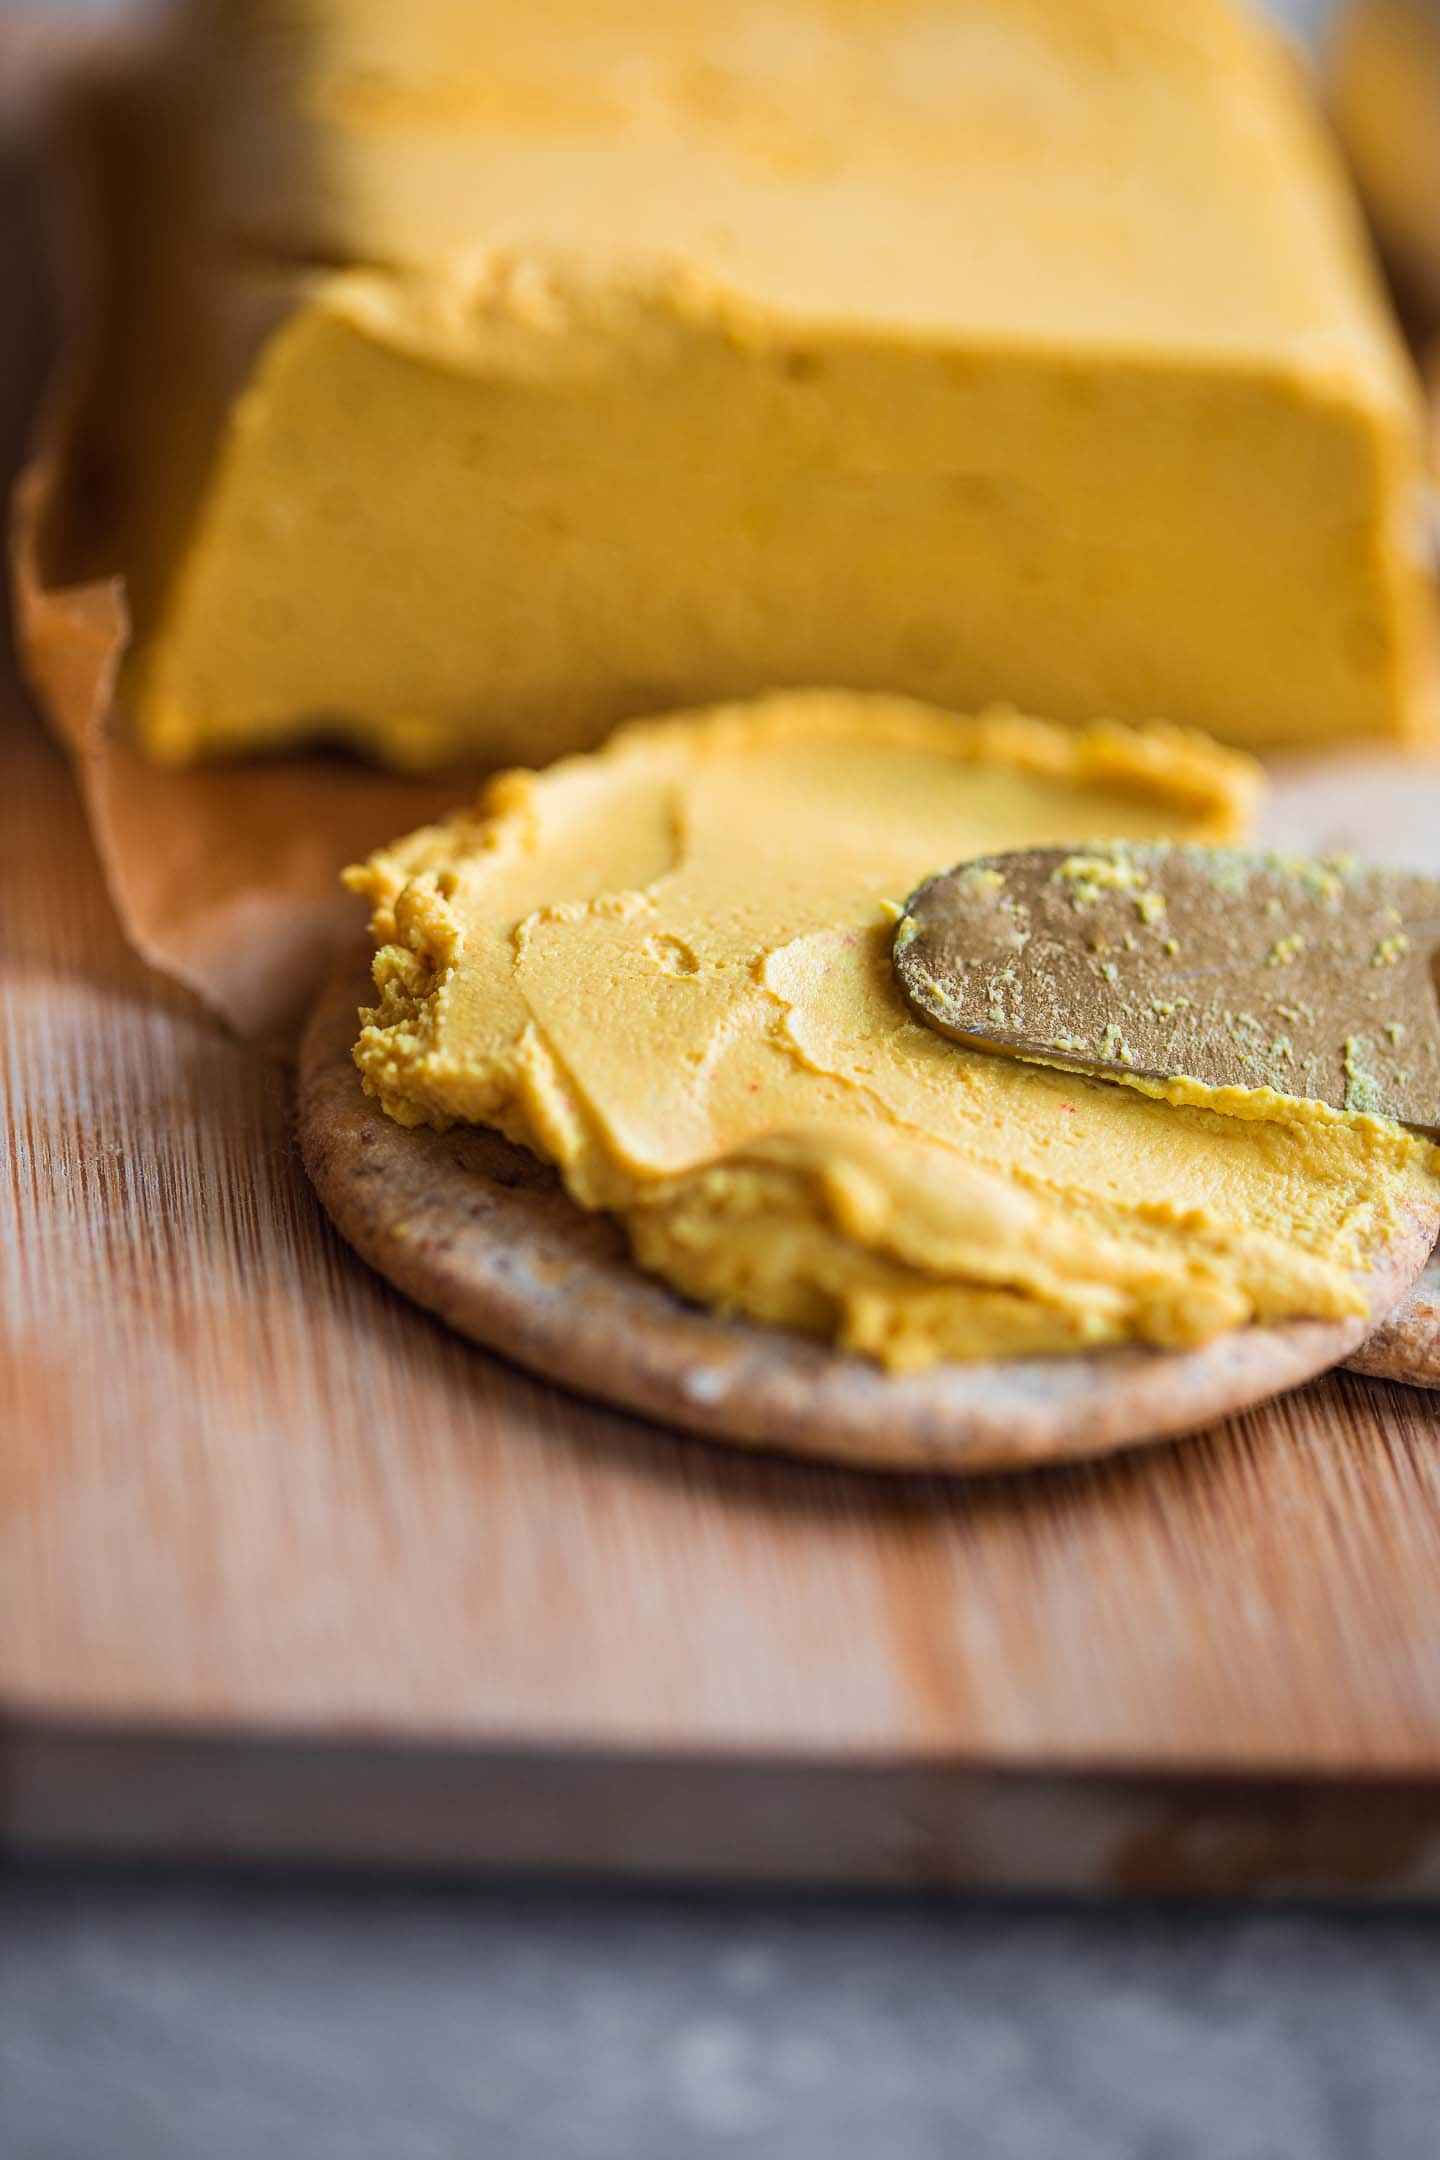 Vegan cheese being spread on a cracker